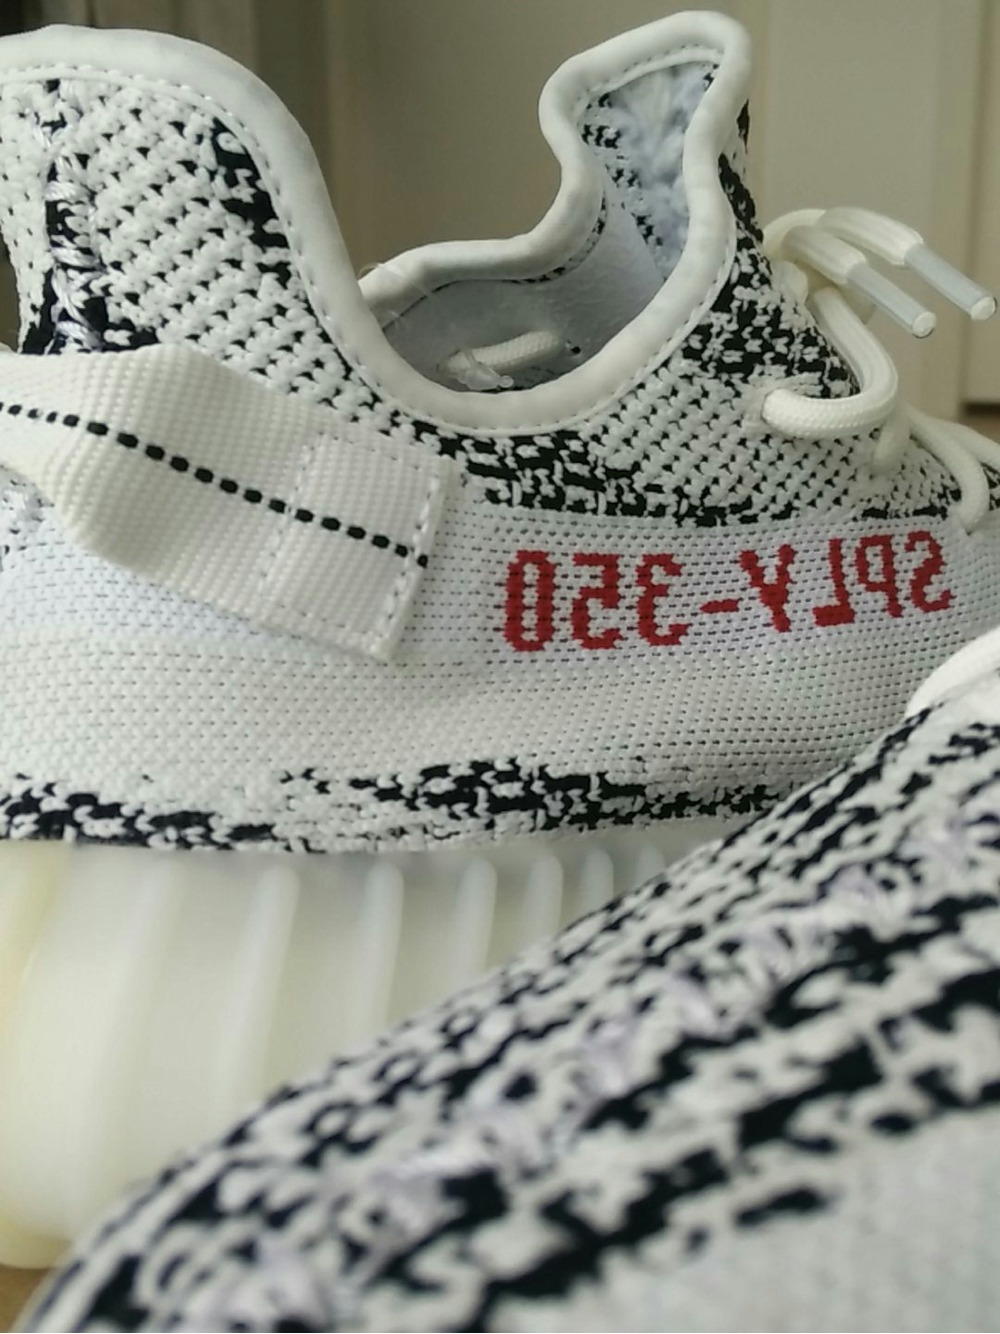 82% Off Yeezy boost 350 v2 'Zebra' raffle online cp9654 uk Drop Date